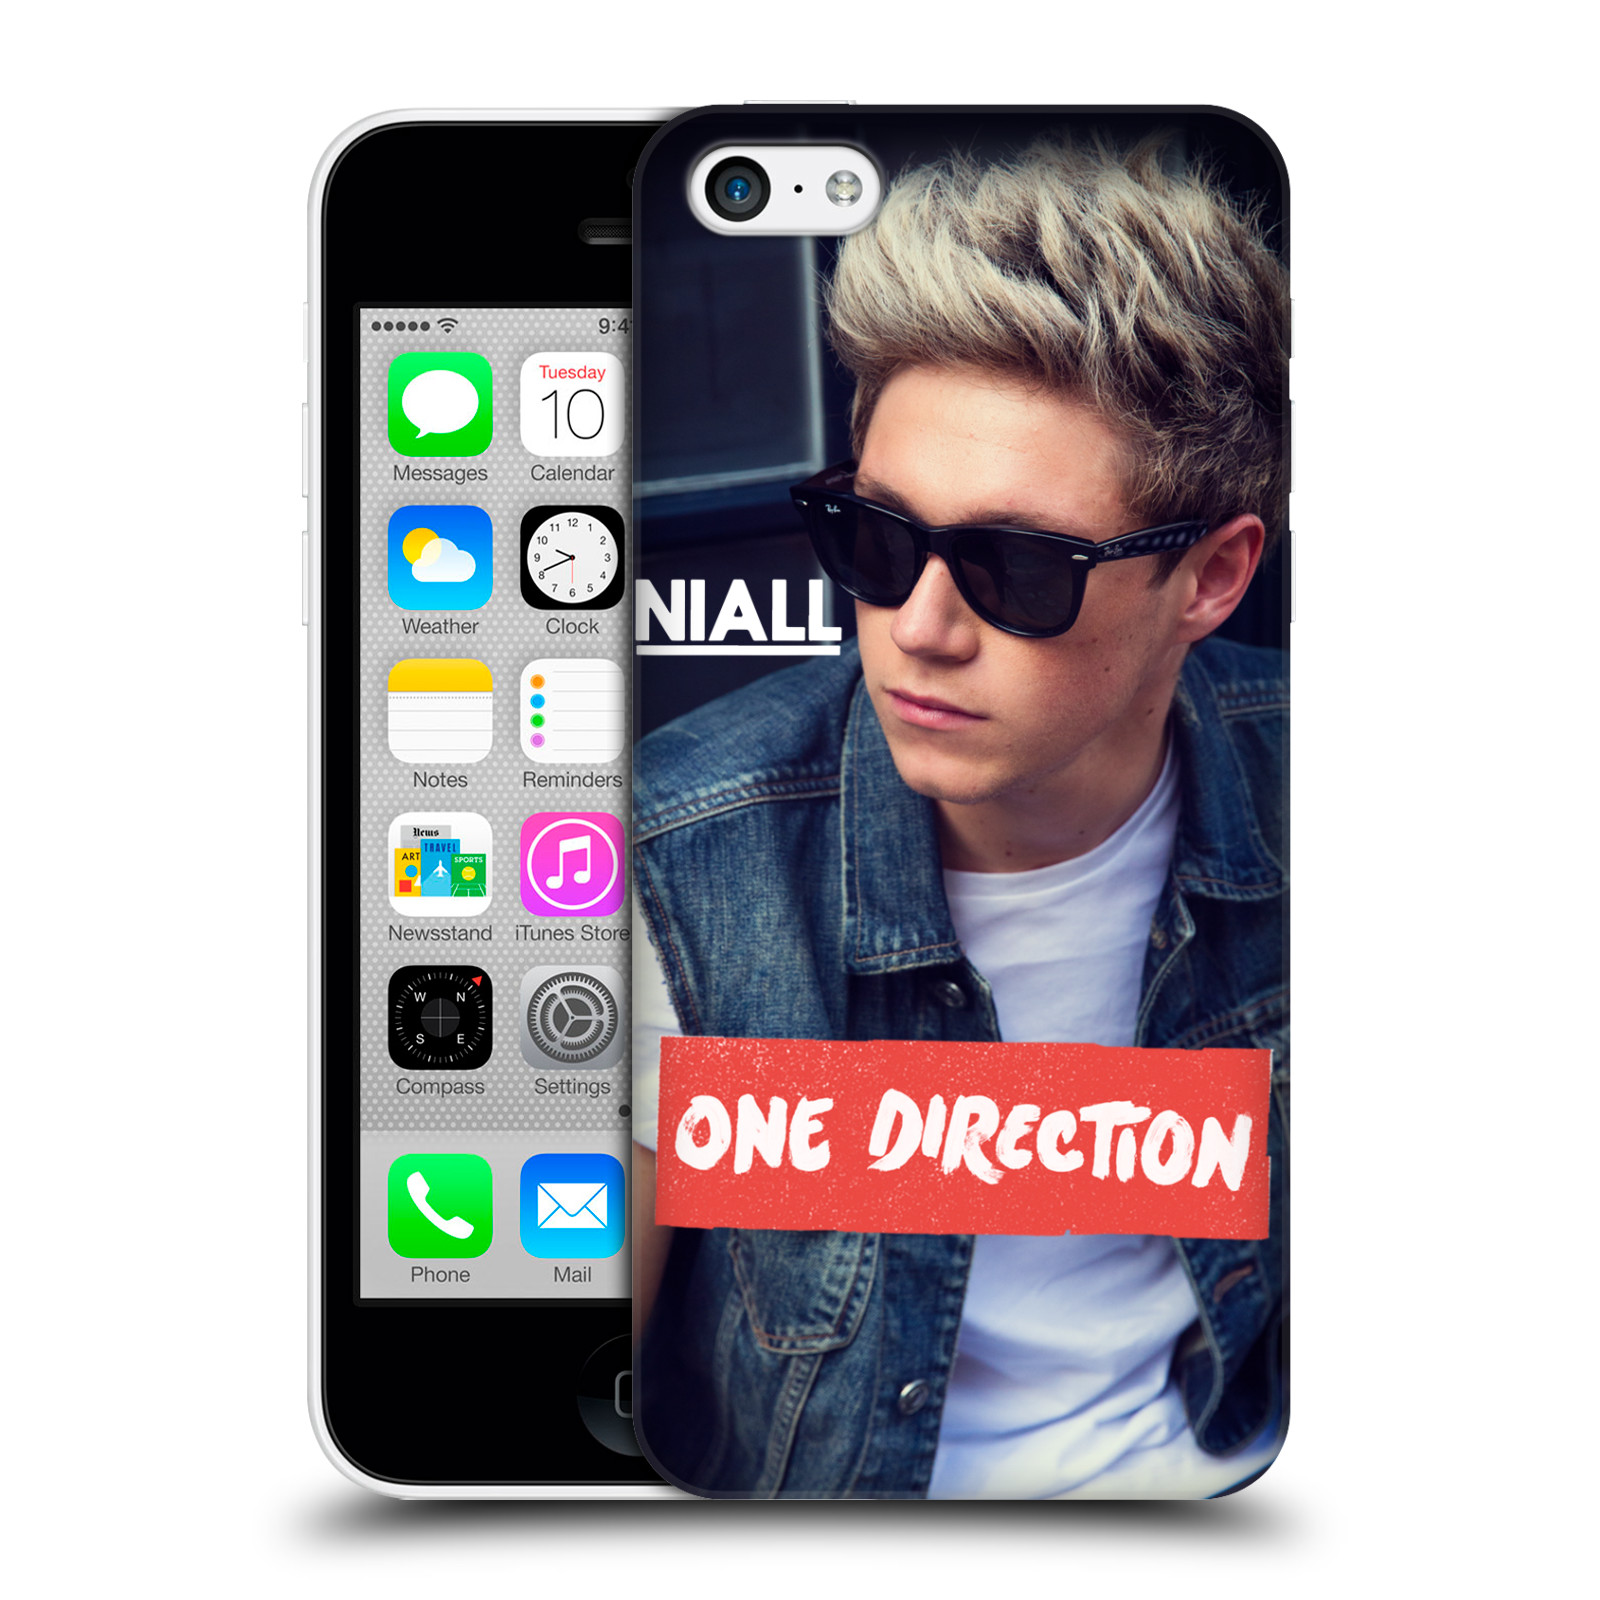 official one direction 1d niall horan photo hard back case